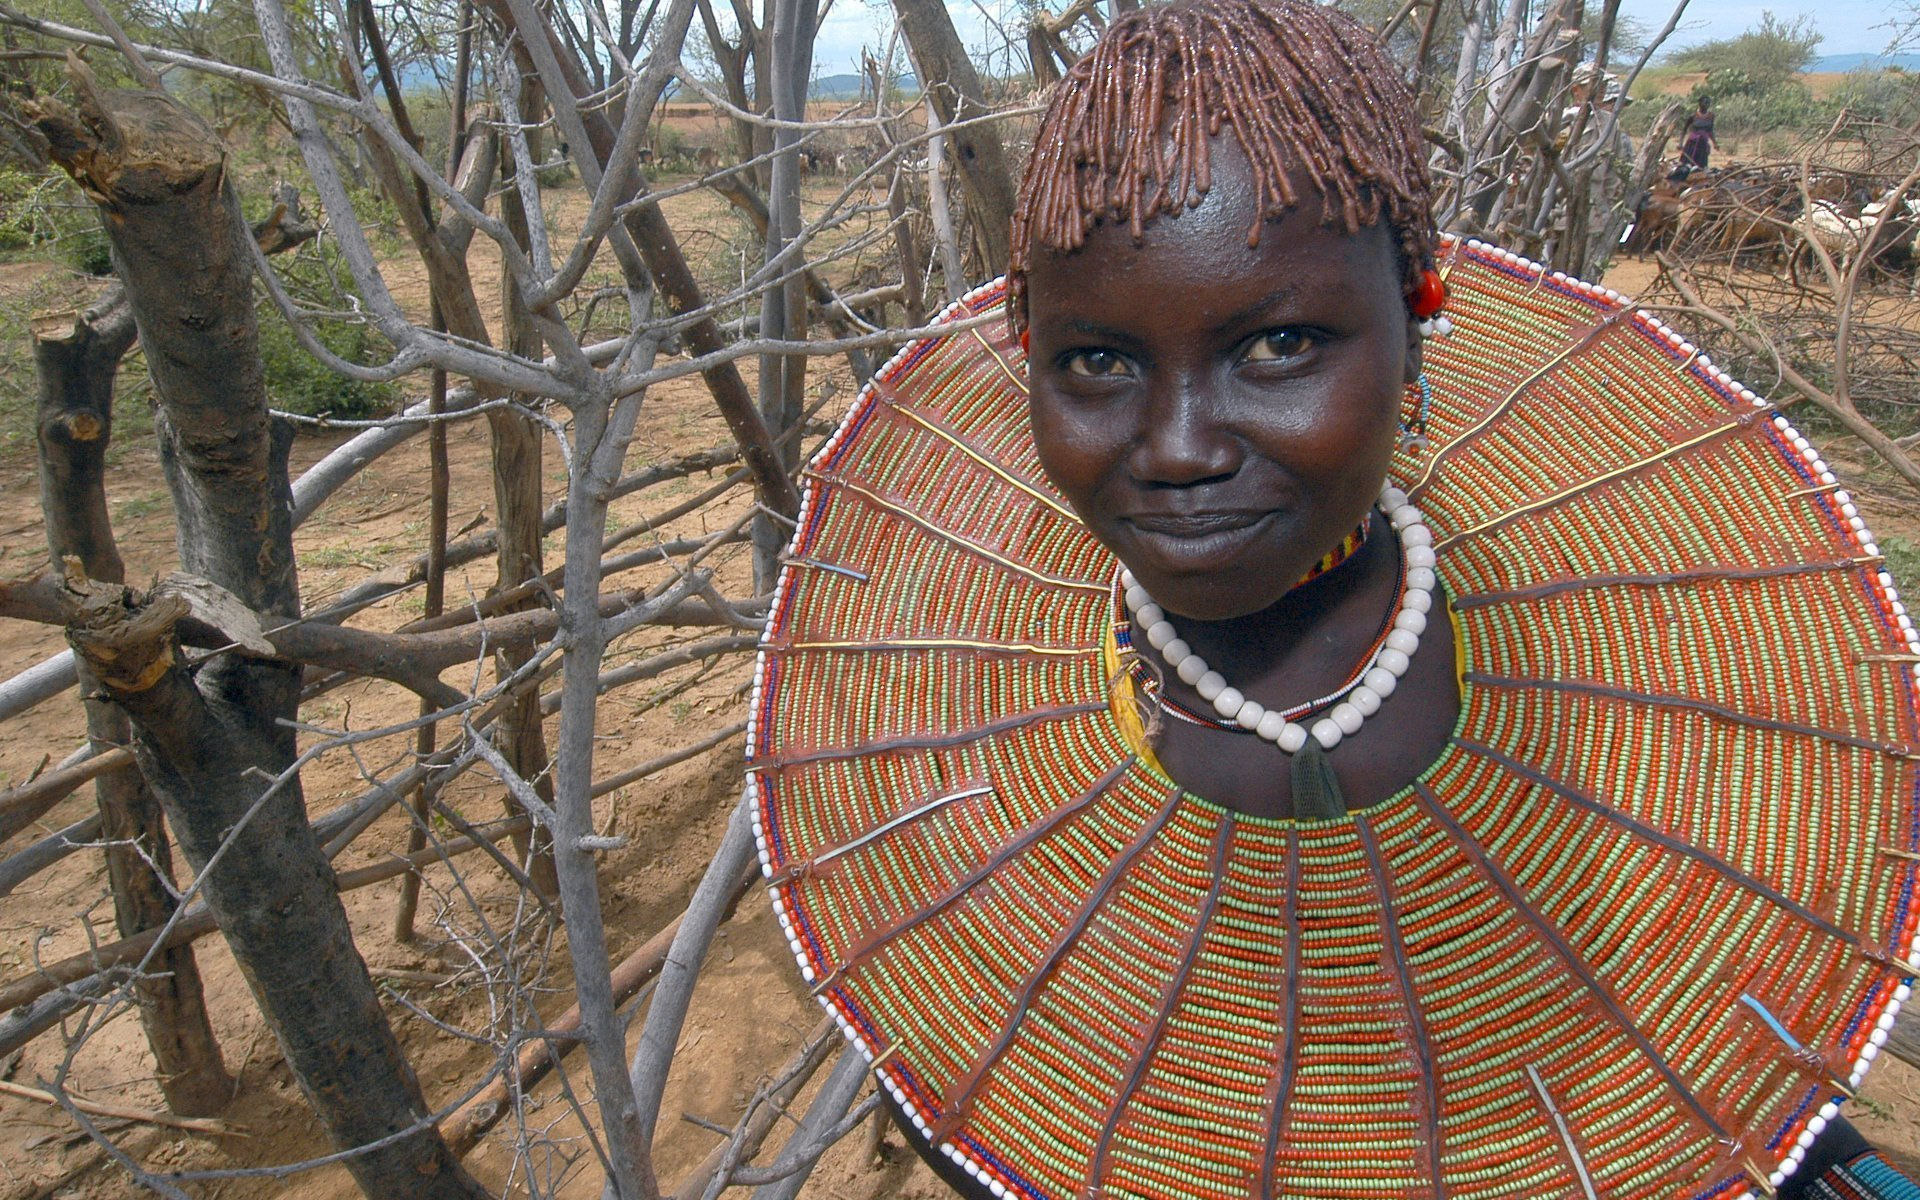 A Pokot girl poses for a photograph. Her necklace signifies that she is engaged to be married. She is not considered an adult yet because she does not wear either the second neckpiece, signifying her marriage, or the traditional black feather on her head, signifying her circumcision. In this part of Kenya, female circumcision is common, and, among the Pokot, is considered a rite of passage into female adulthood.